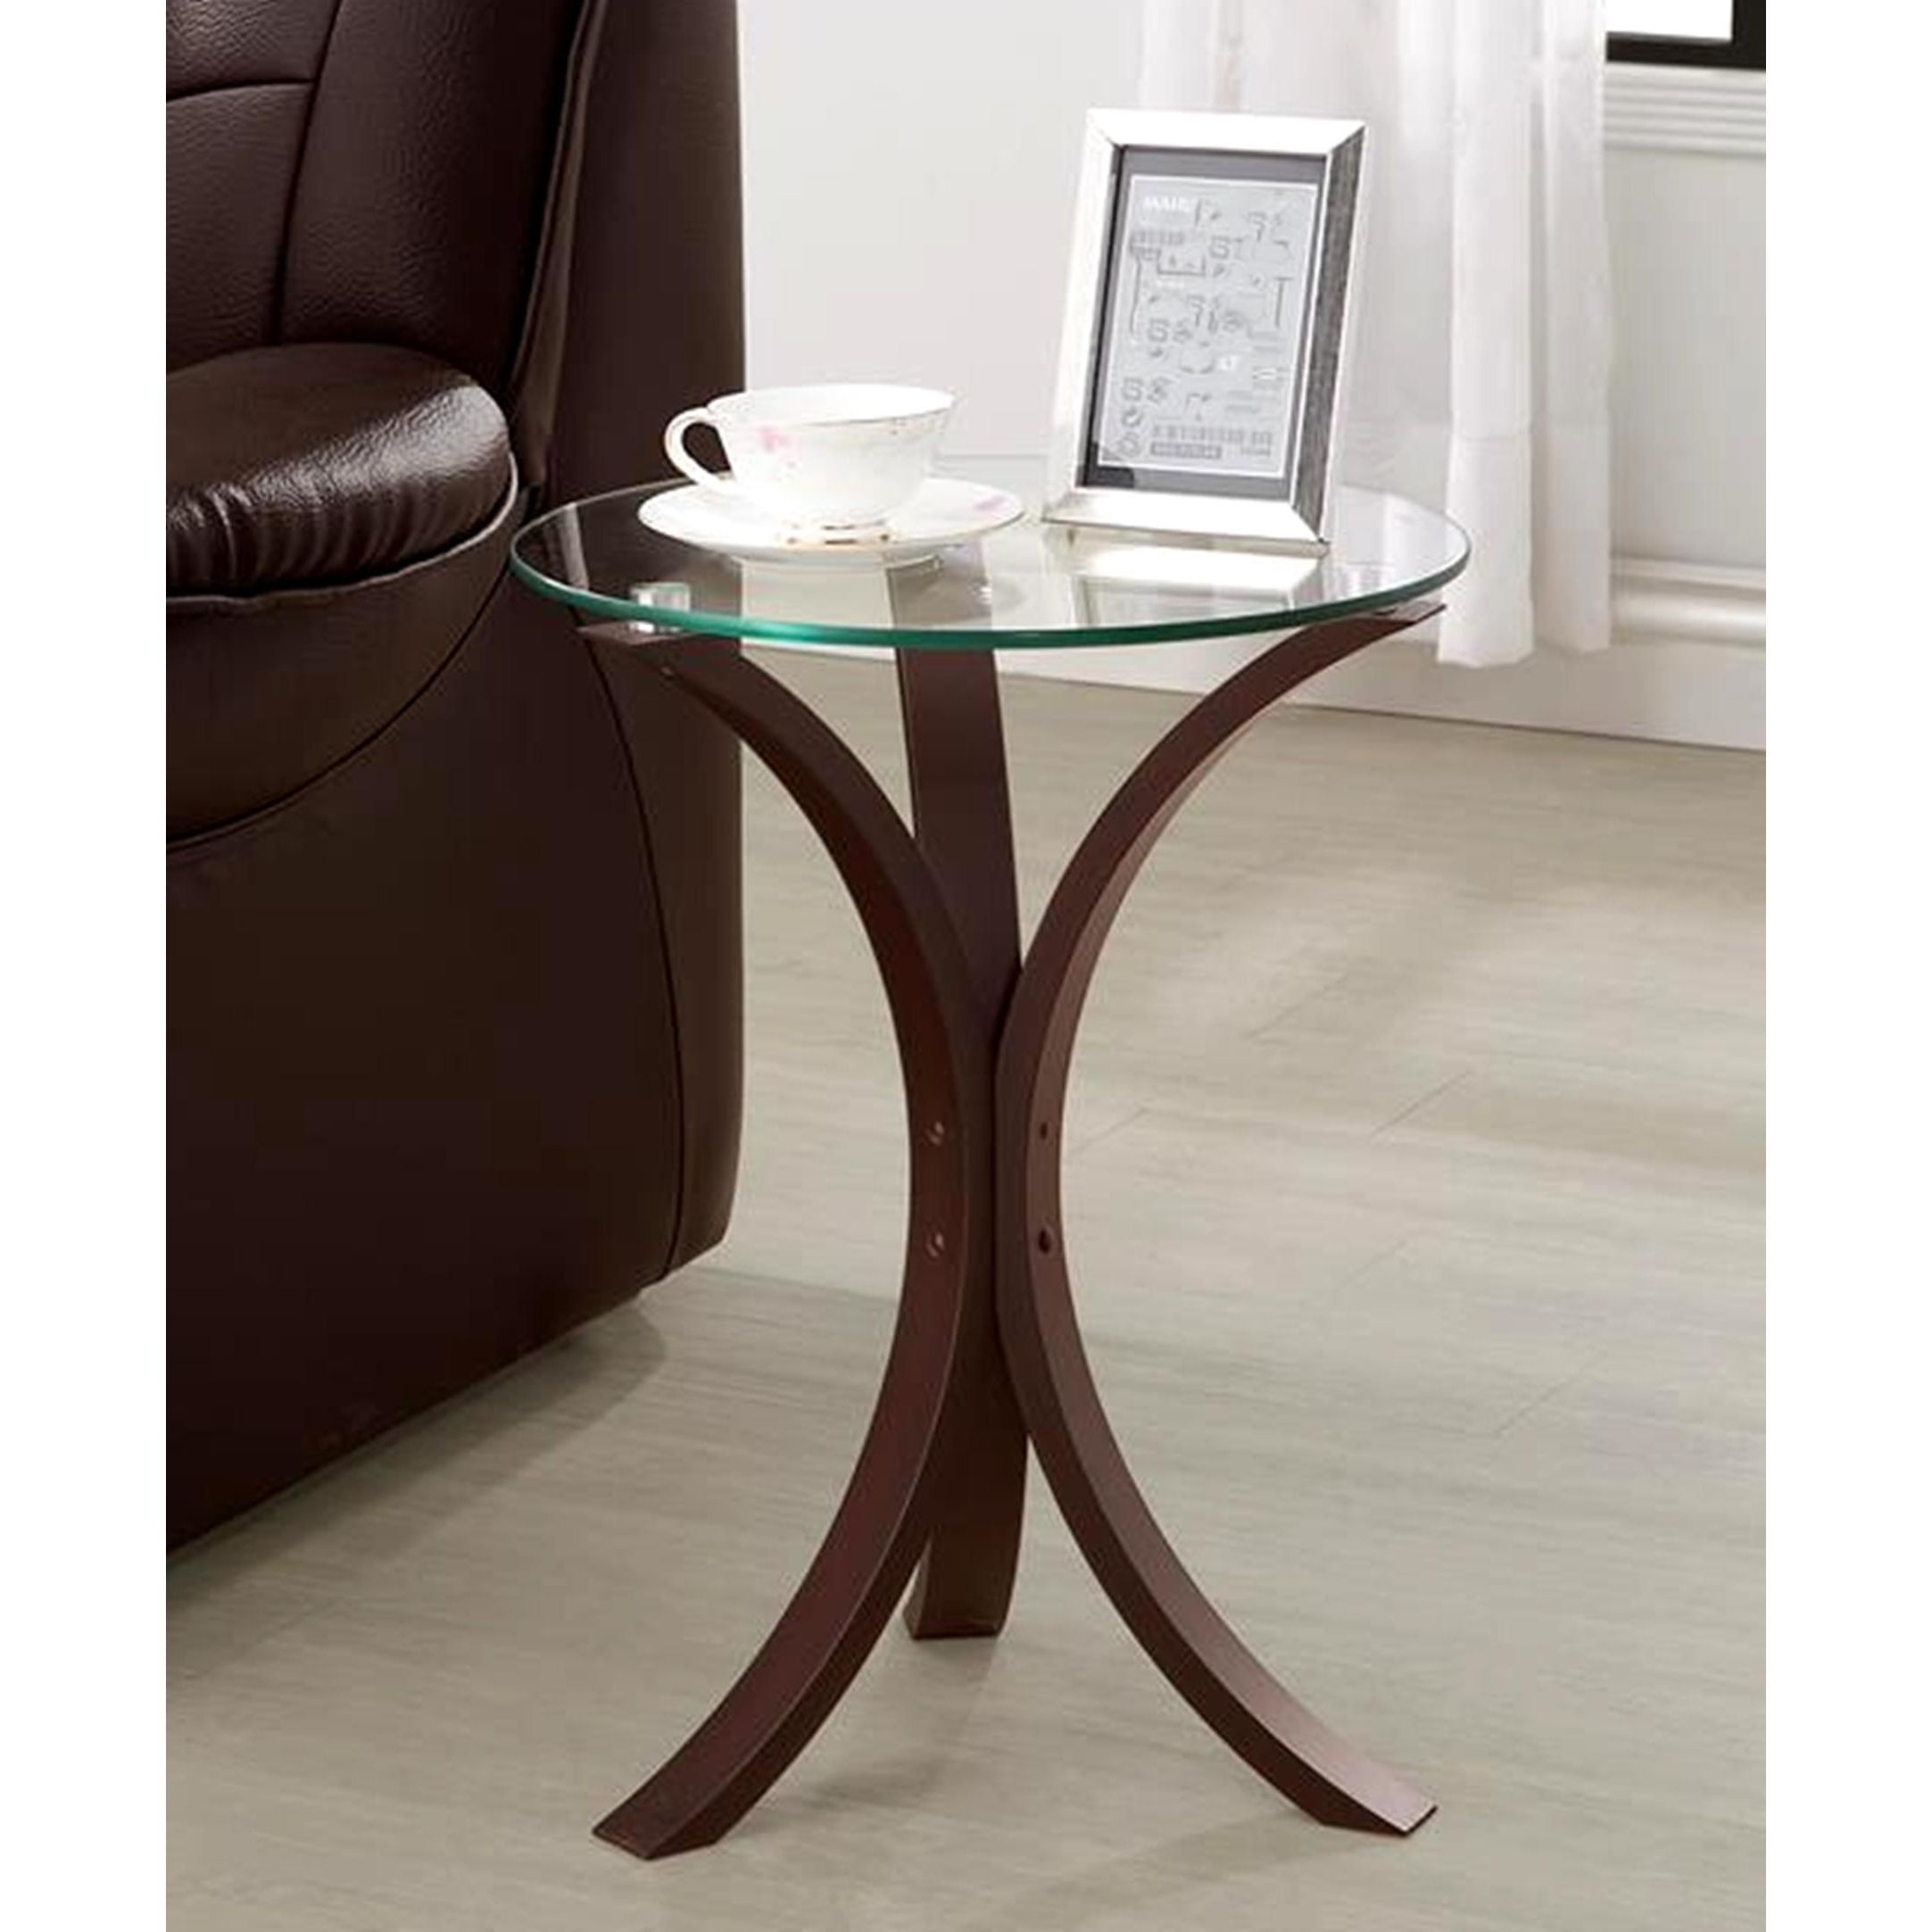 living room accent snack table with glass top cappuccino brown tables reclaimed oak furniture target gold flatware clear end bunnings swing chair bedside round tablecloth tall